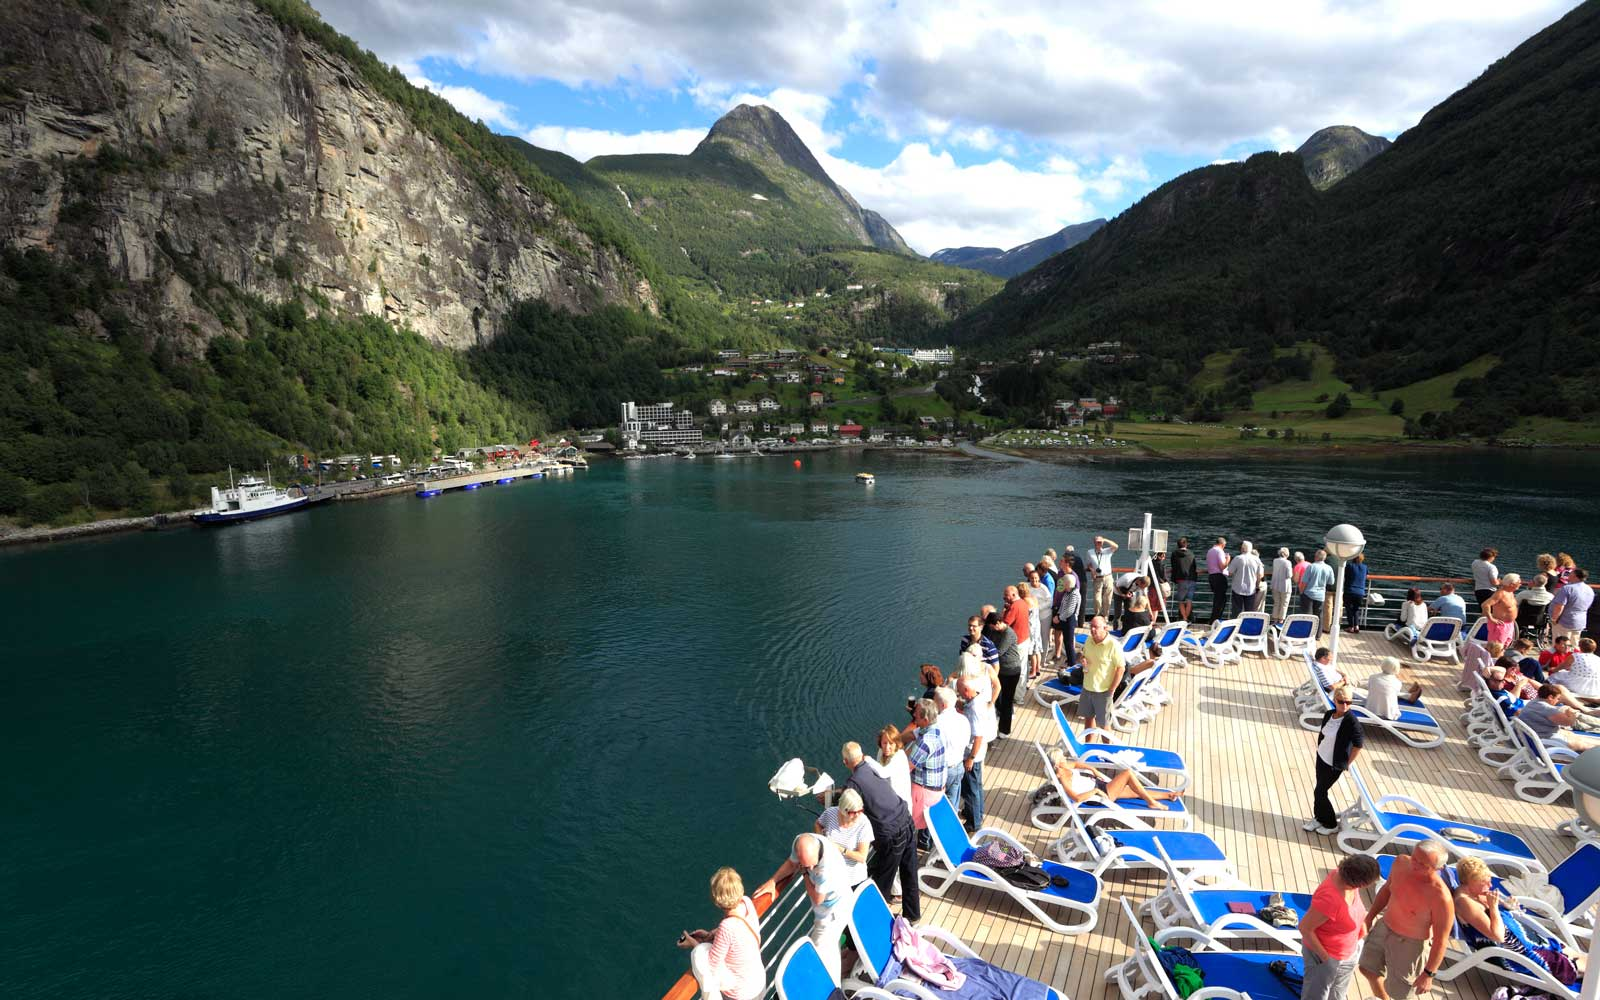 Cruise ships in Geirangerfjord